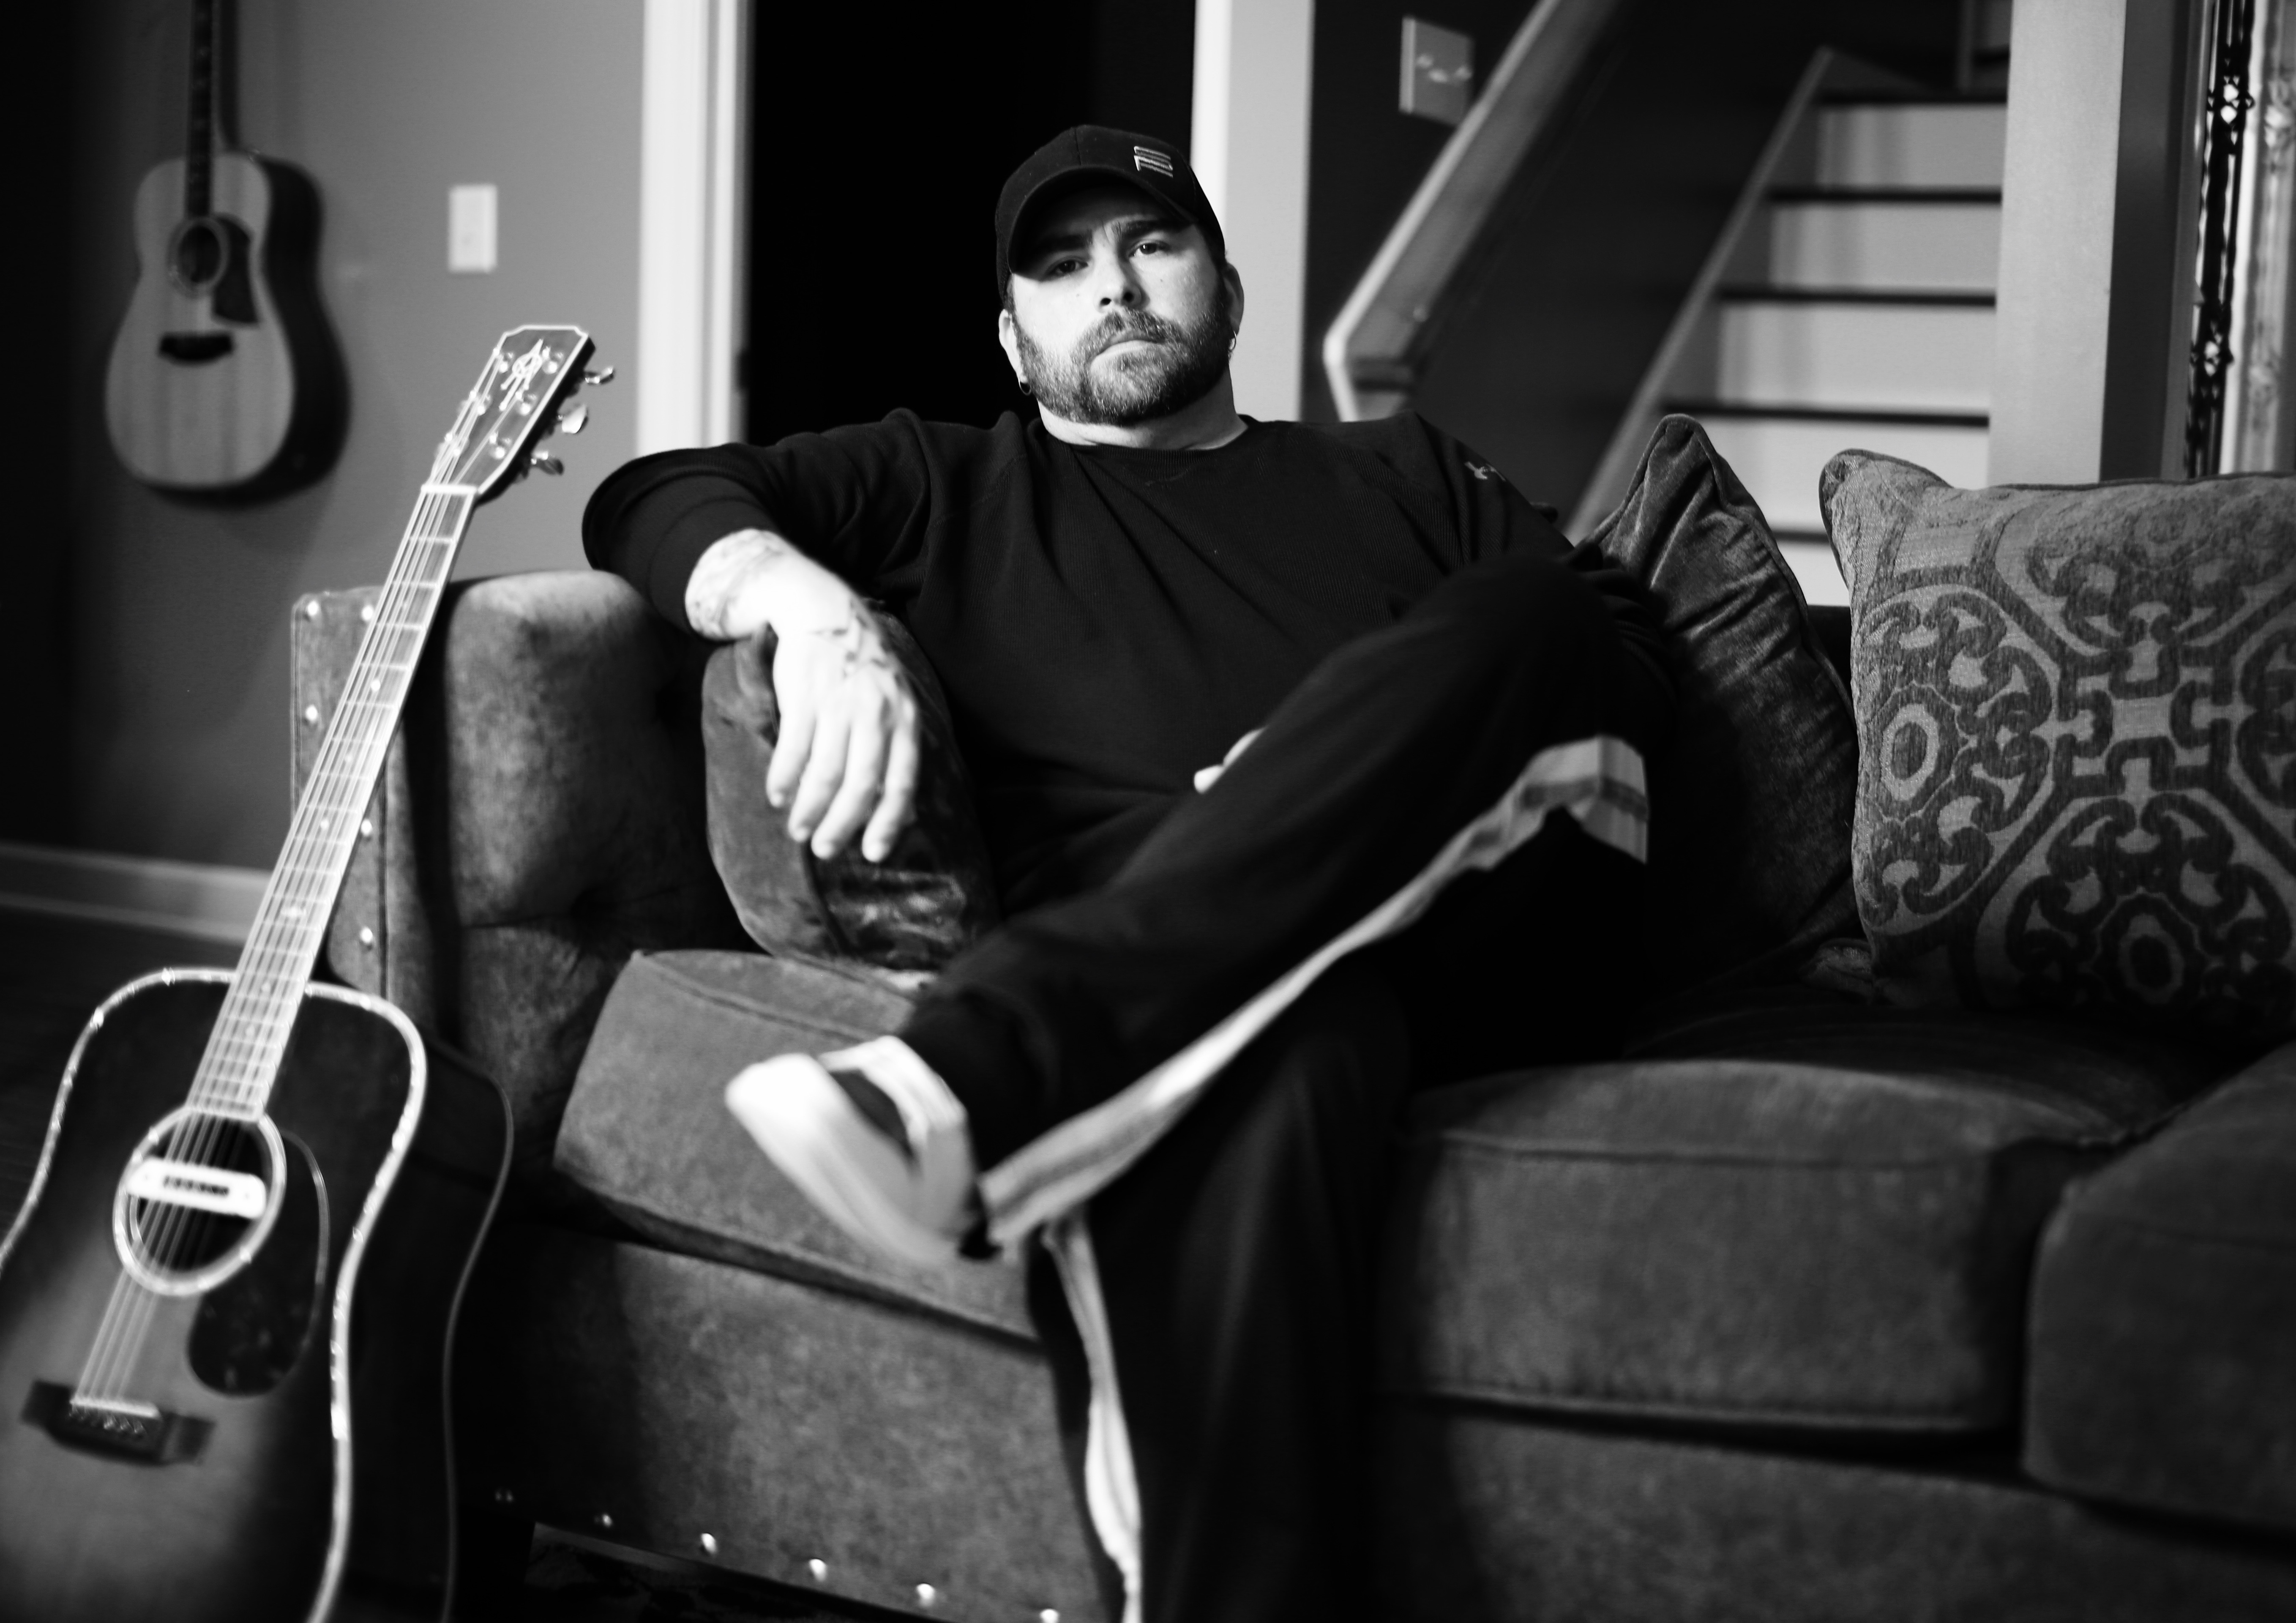 Episode 54: Steve the songwriter – producer